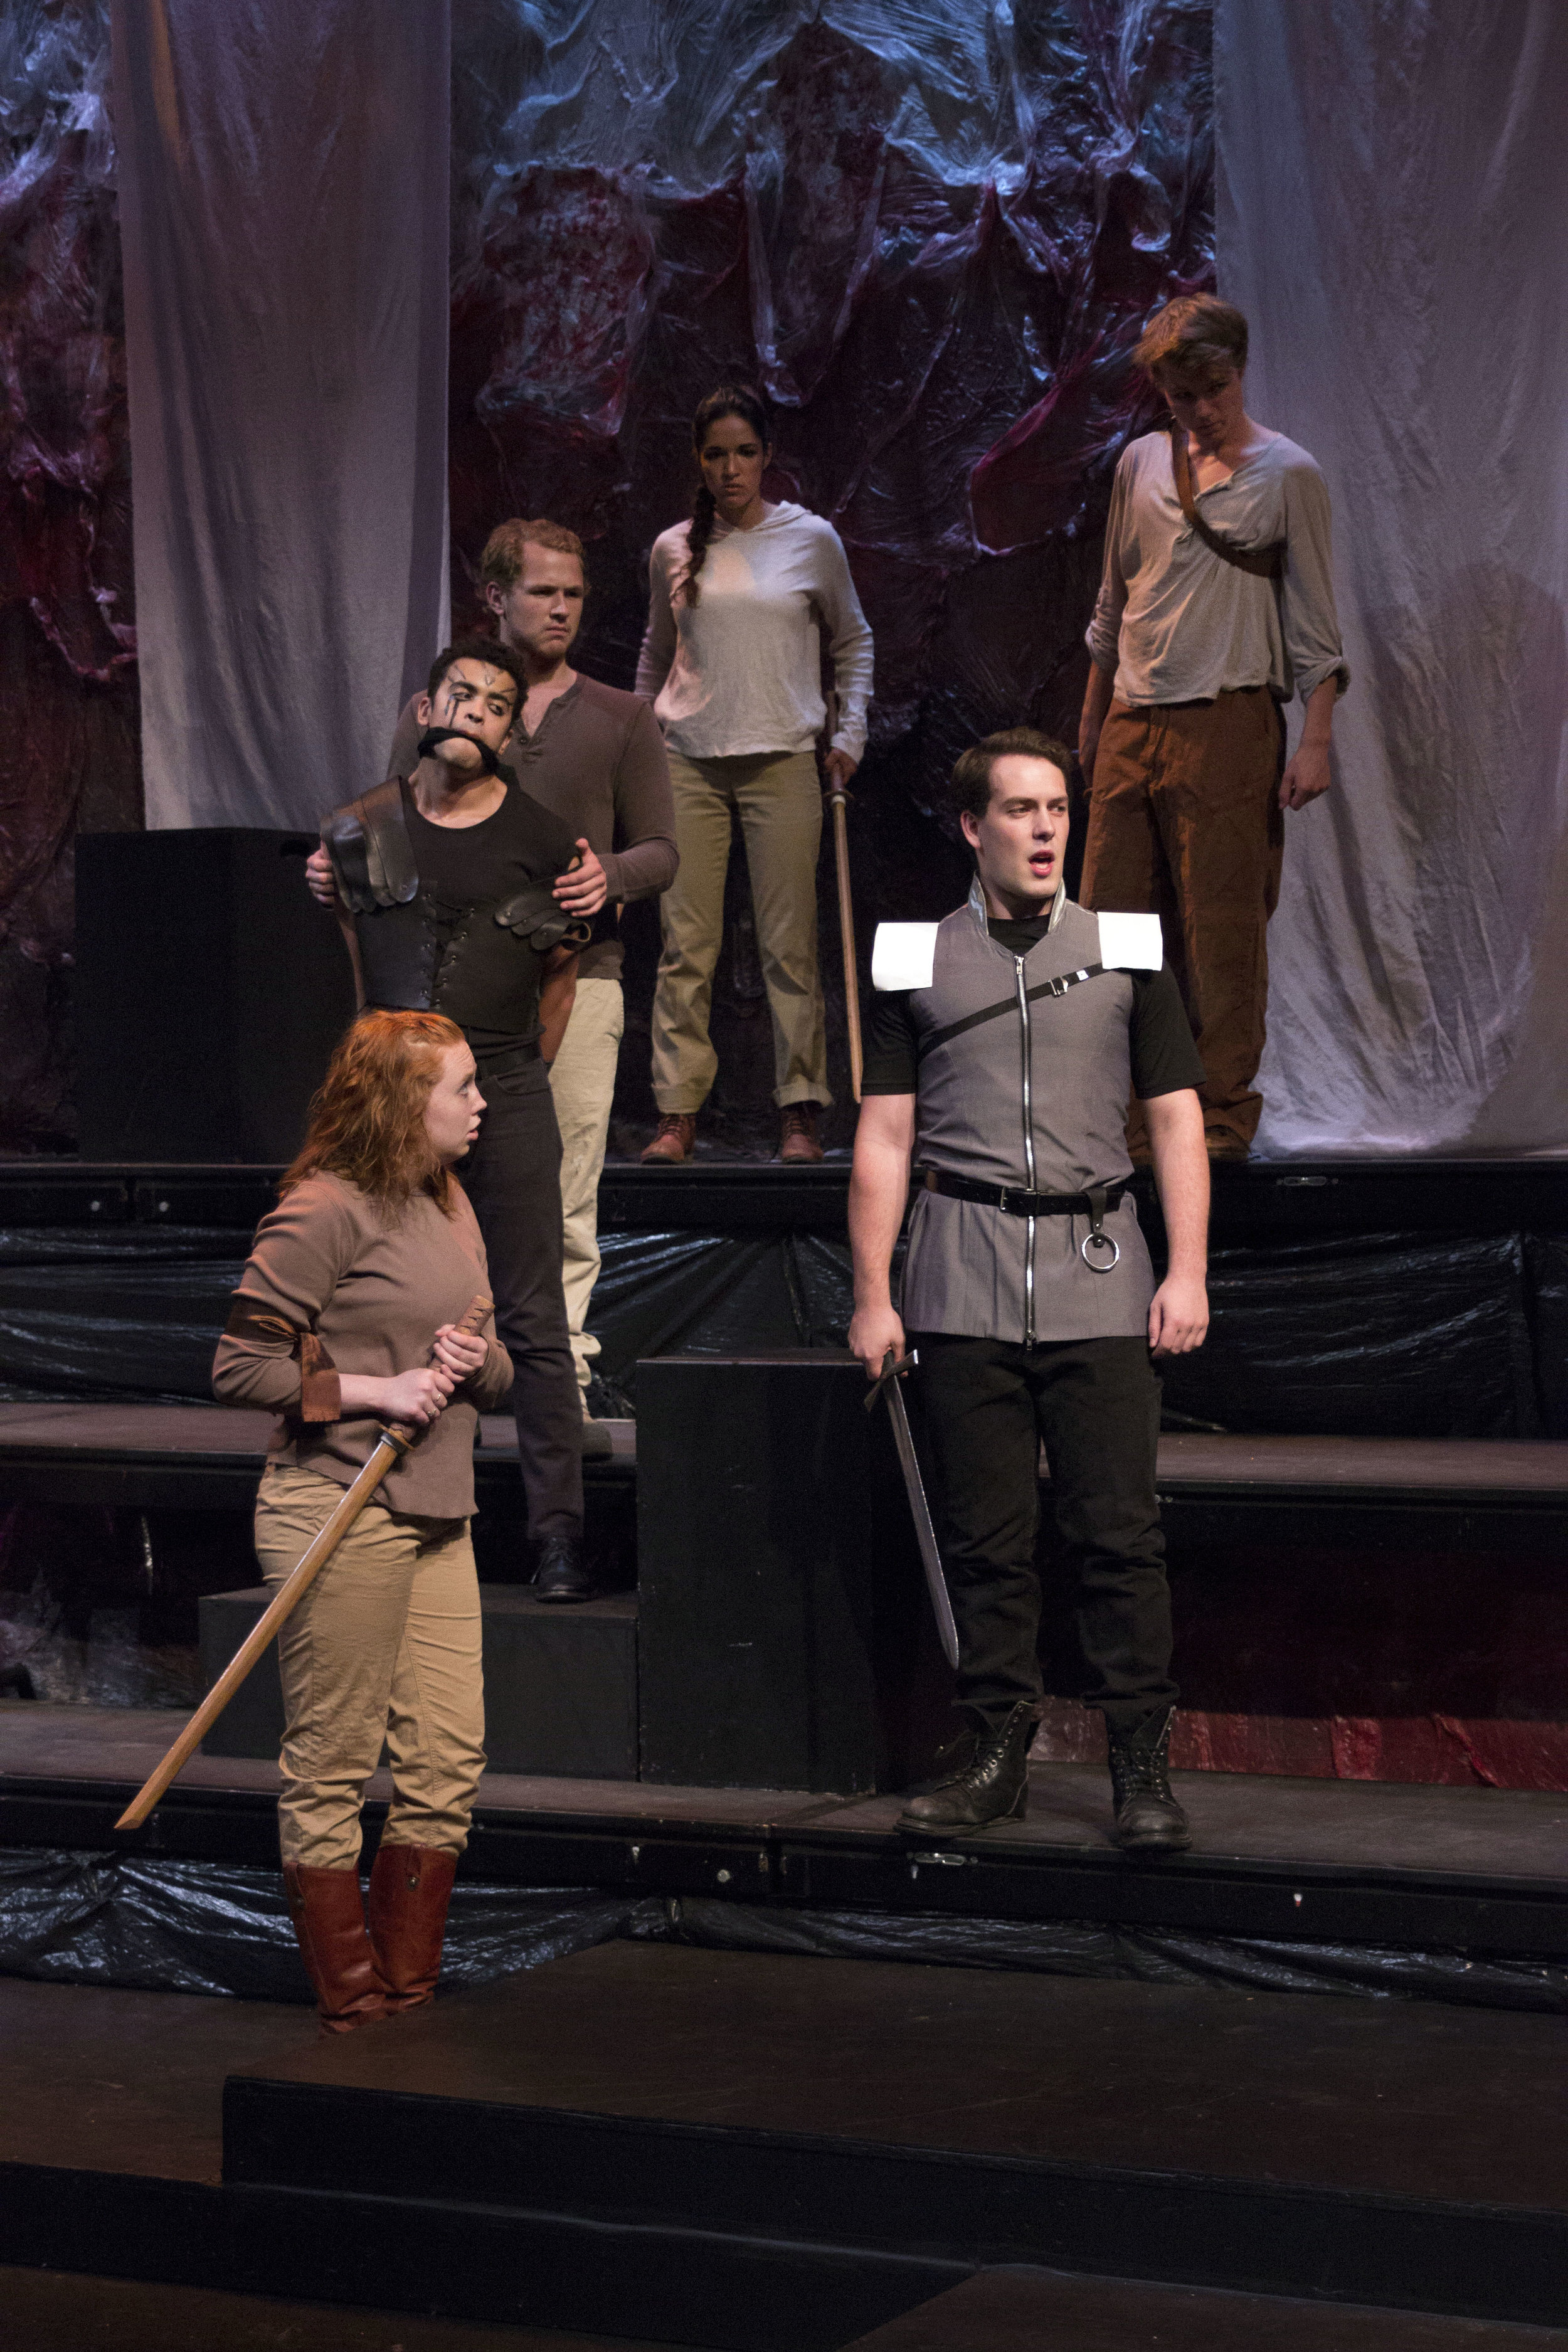 Titus Andronicus at Shakespeare Theatre of NJ 2015